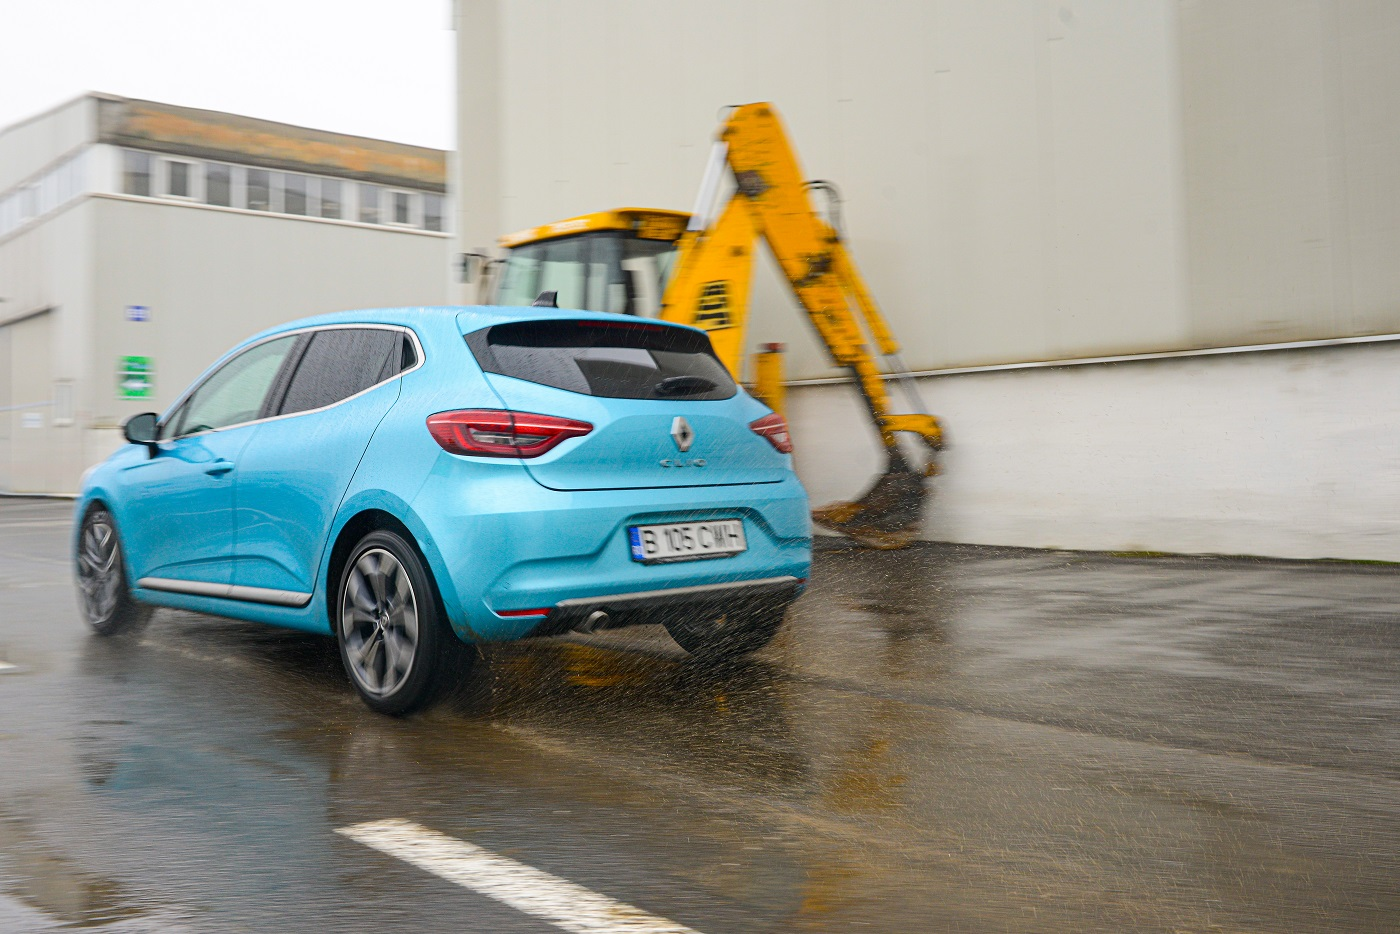 Test drive Renault Clio 115 dCi (9)